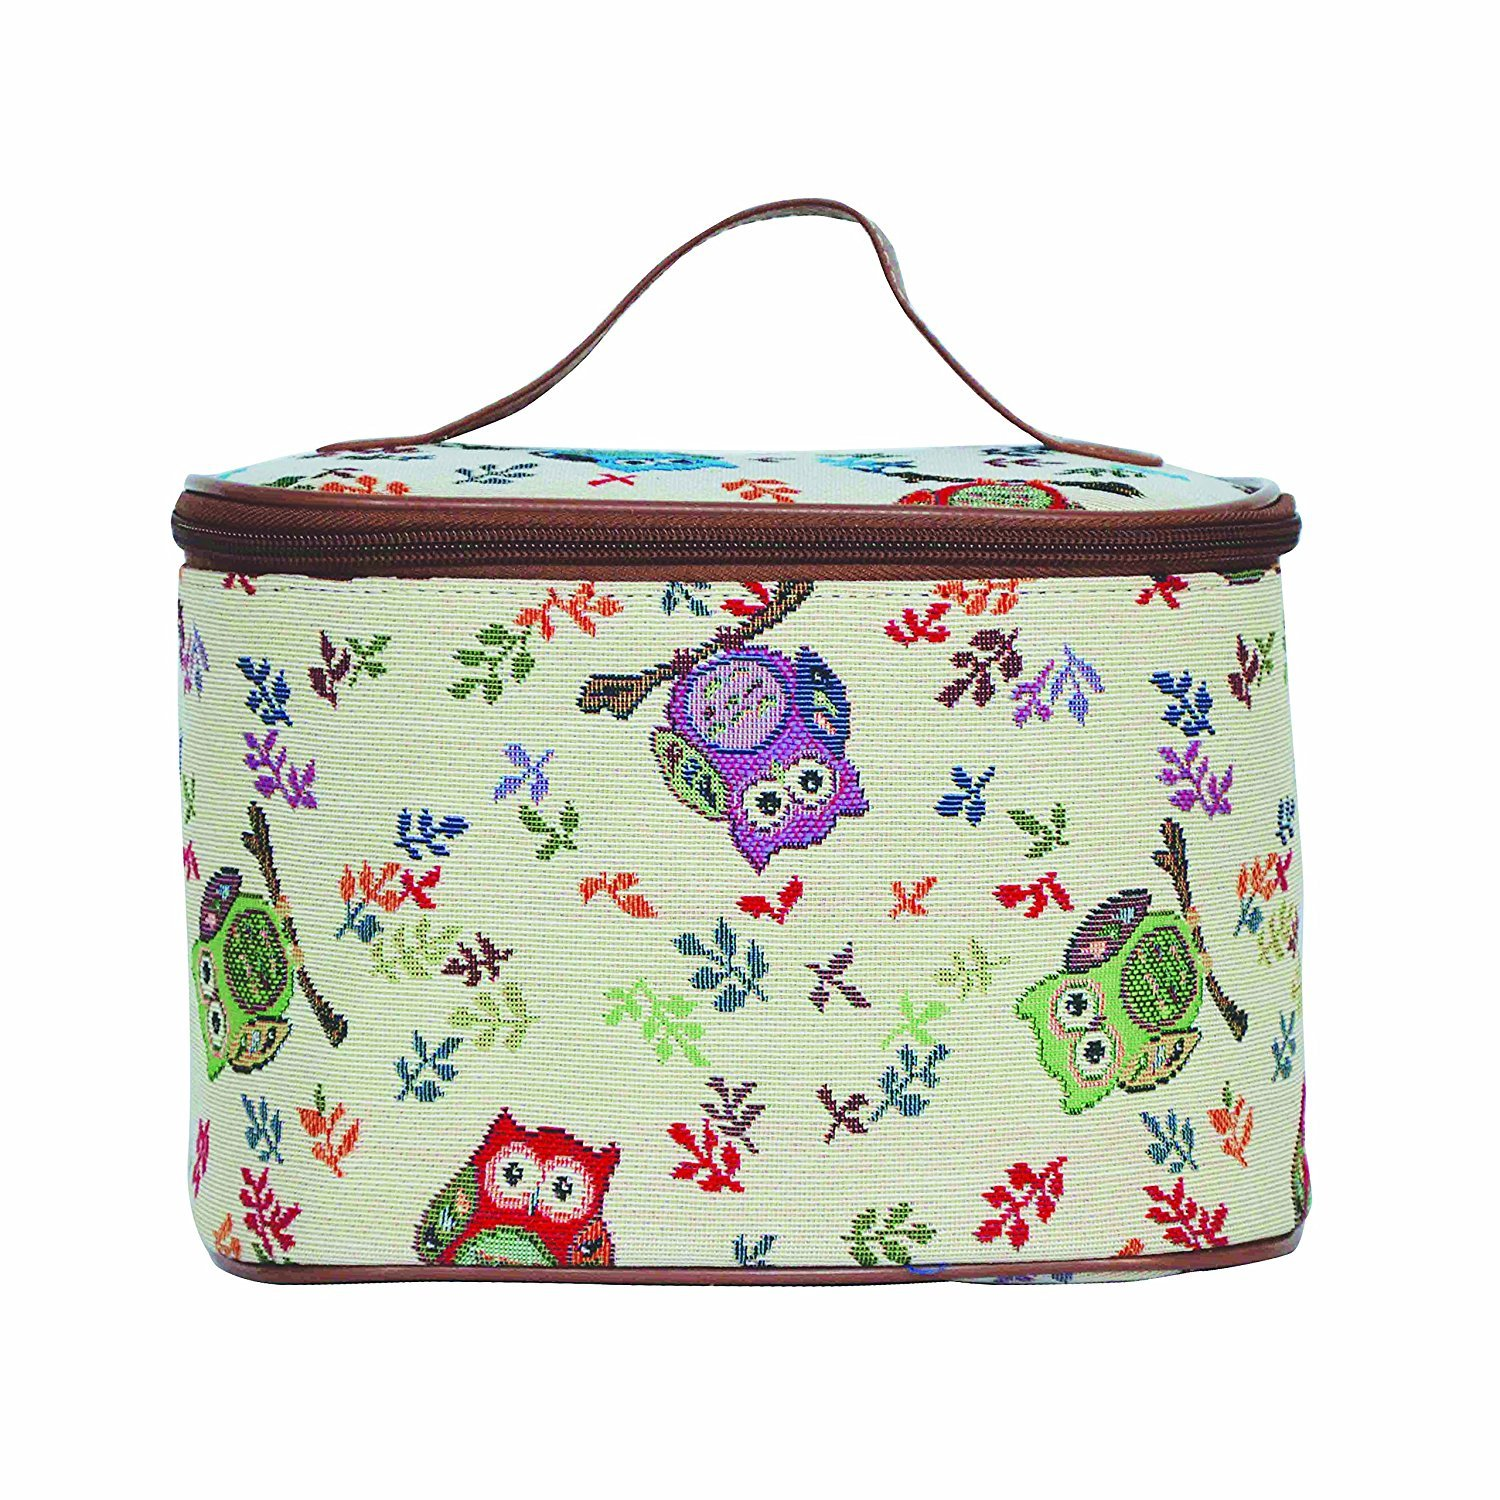 Owl Pattern Cosmetic Bag/Cosmetic Travel Bag/Portable Travel Makeup Bag for Women from Siganre (Toil-OWL)